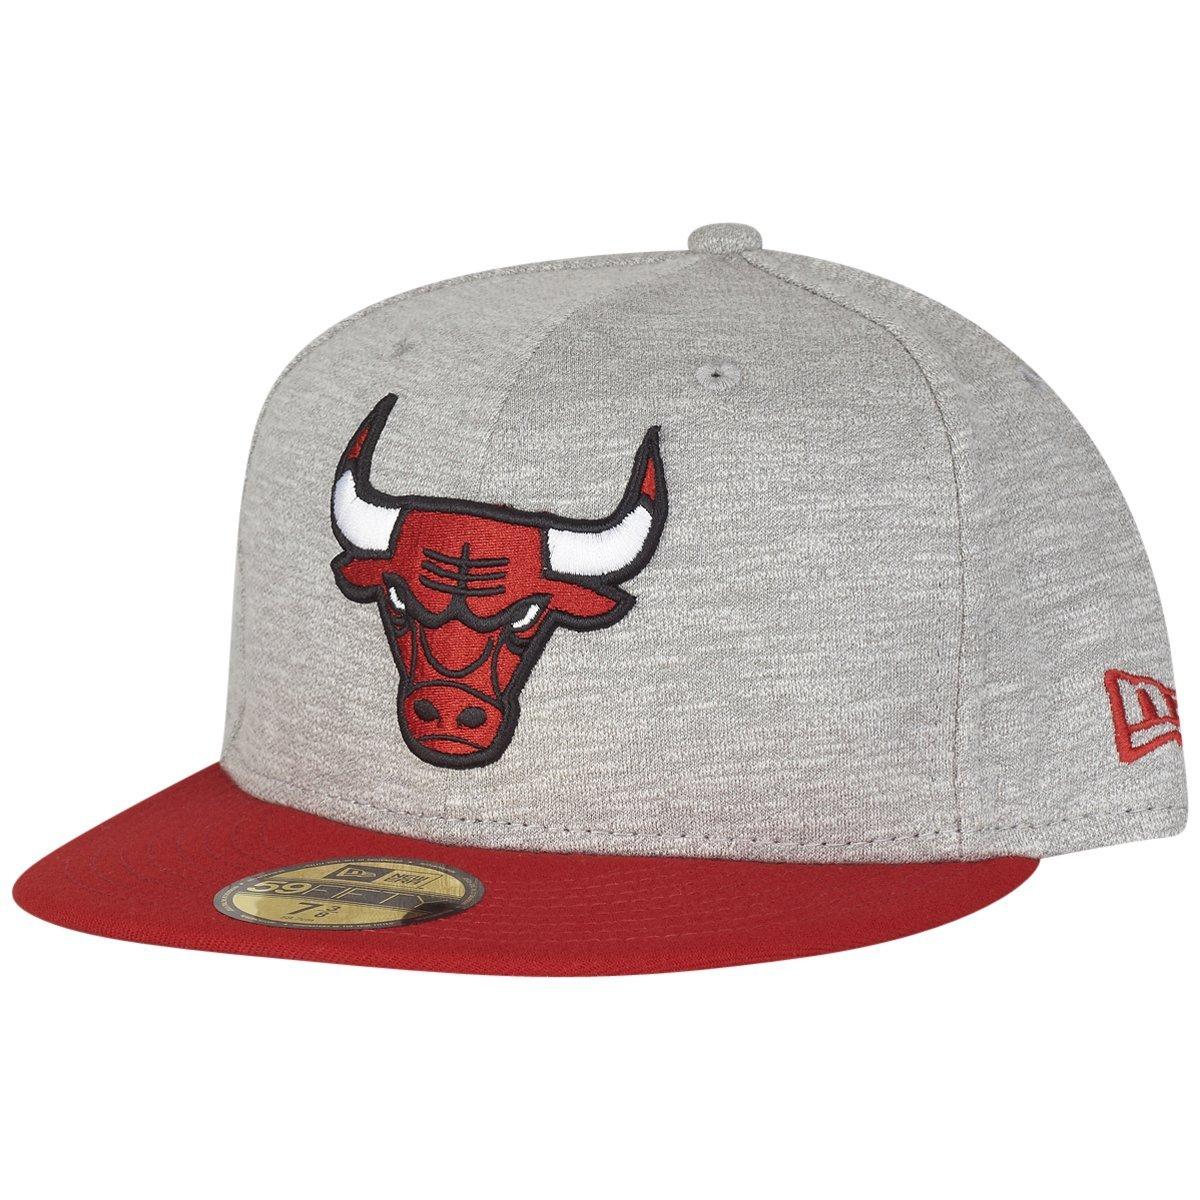 New Era NBA CHICAGO BULLS Heather Pop 59FIFTY Cap